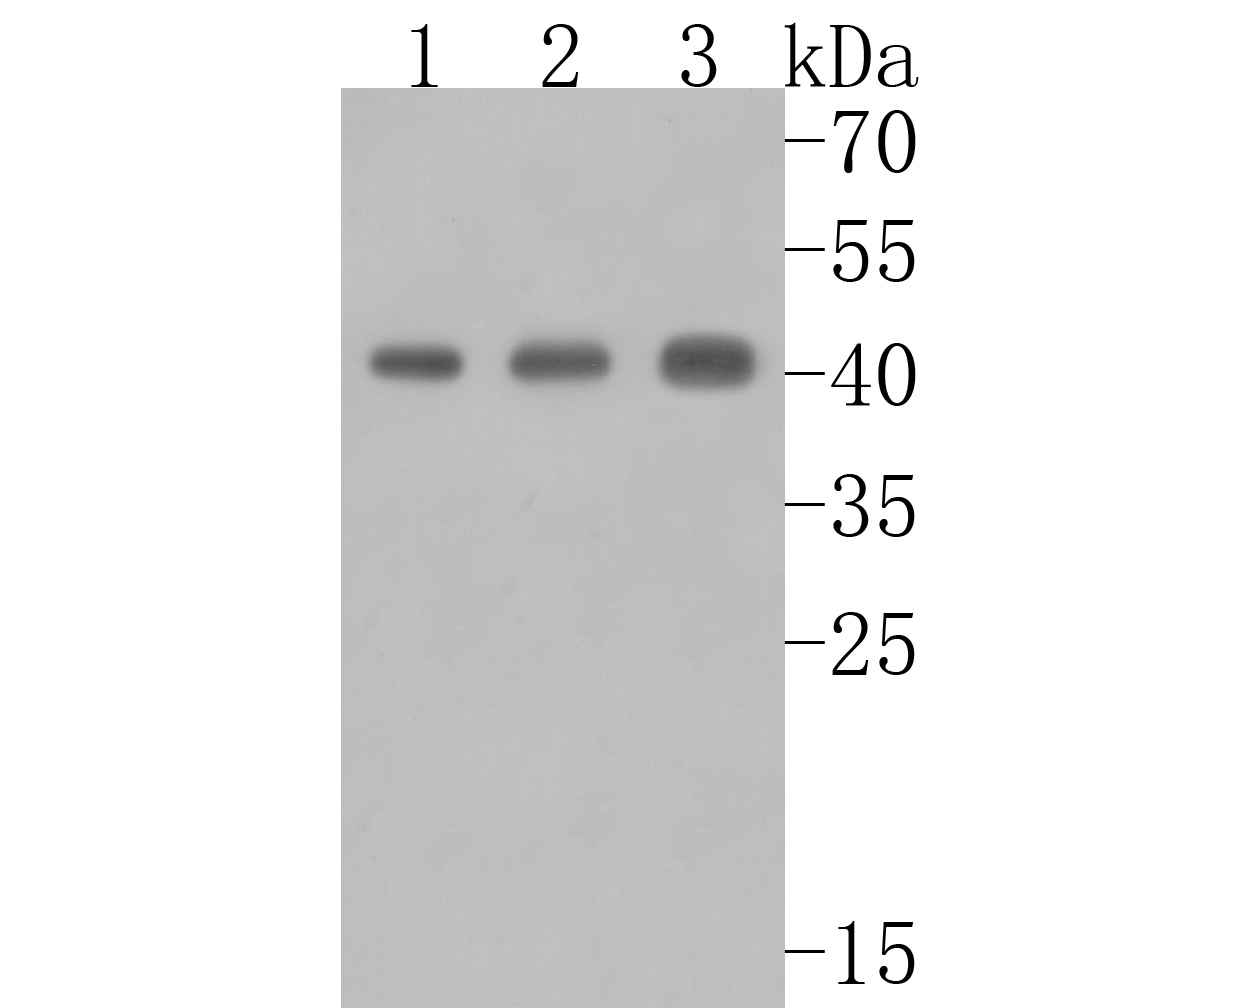 Western blot analysis of ACAA2 on different lysates. Proteins were transferred to a PVDF membrane and blocked with 5% BSA in PBS for 1 hour at room temperature. The primary antibody (HA720006, 1/500) was used in 5% BSA at room temperature for 2 hours. Goat Anti-Rabbit IgG - HRP Secondary Antibody (HA1001) at 1:5,000 dilution was used for 1 hour at room temperature.<br /> Positive control: <br /> Lane 1: 293T cell lysate<br /> Lane 2: Rat colon tissue lysate<br /> Lane 3: NIH/3T3 cell lysate